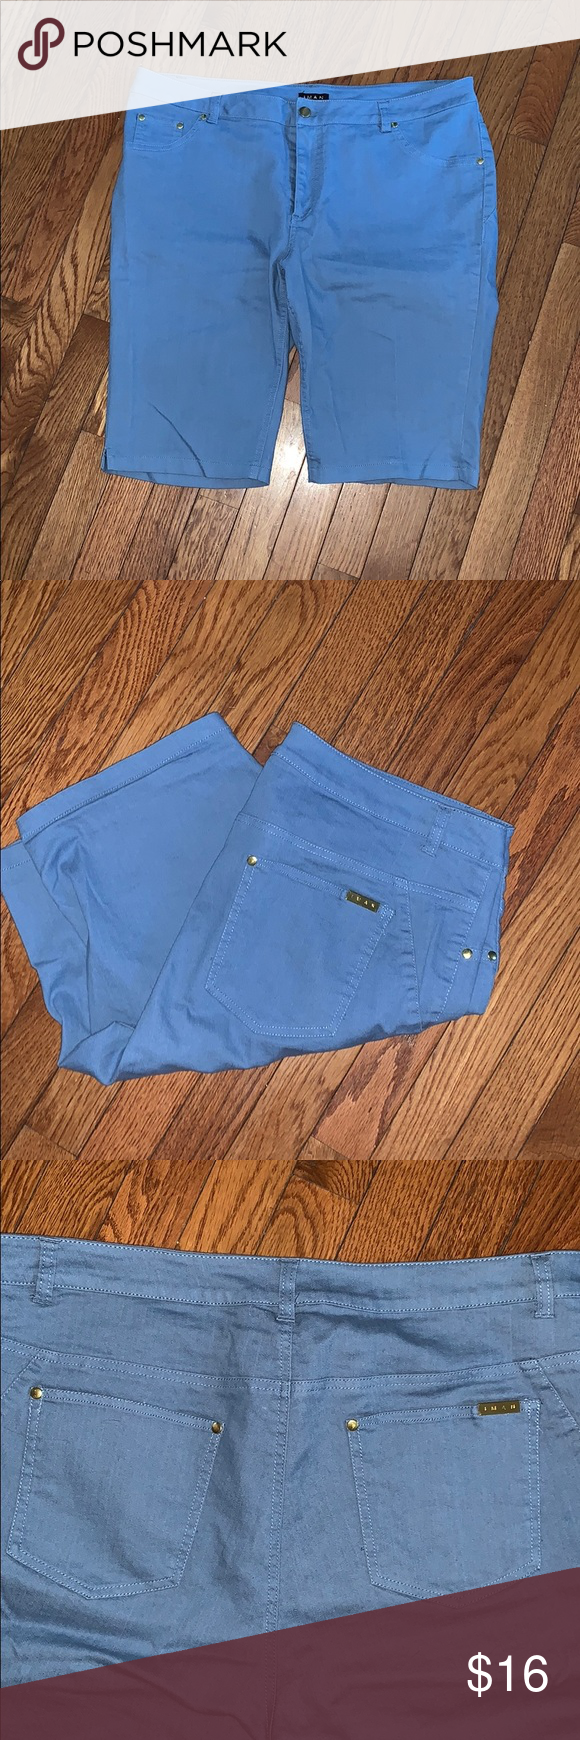 Iman women's shorts light blue super stretch EUC WORN  ONCE IF AT ALL POWDER BLUE GOLD ACCENTS IMAN Shorts Jean Shorts #lightblueshorts